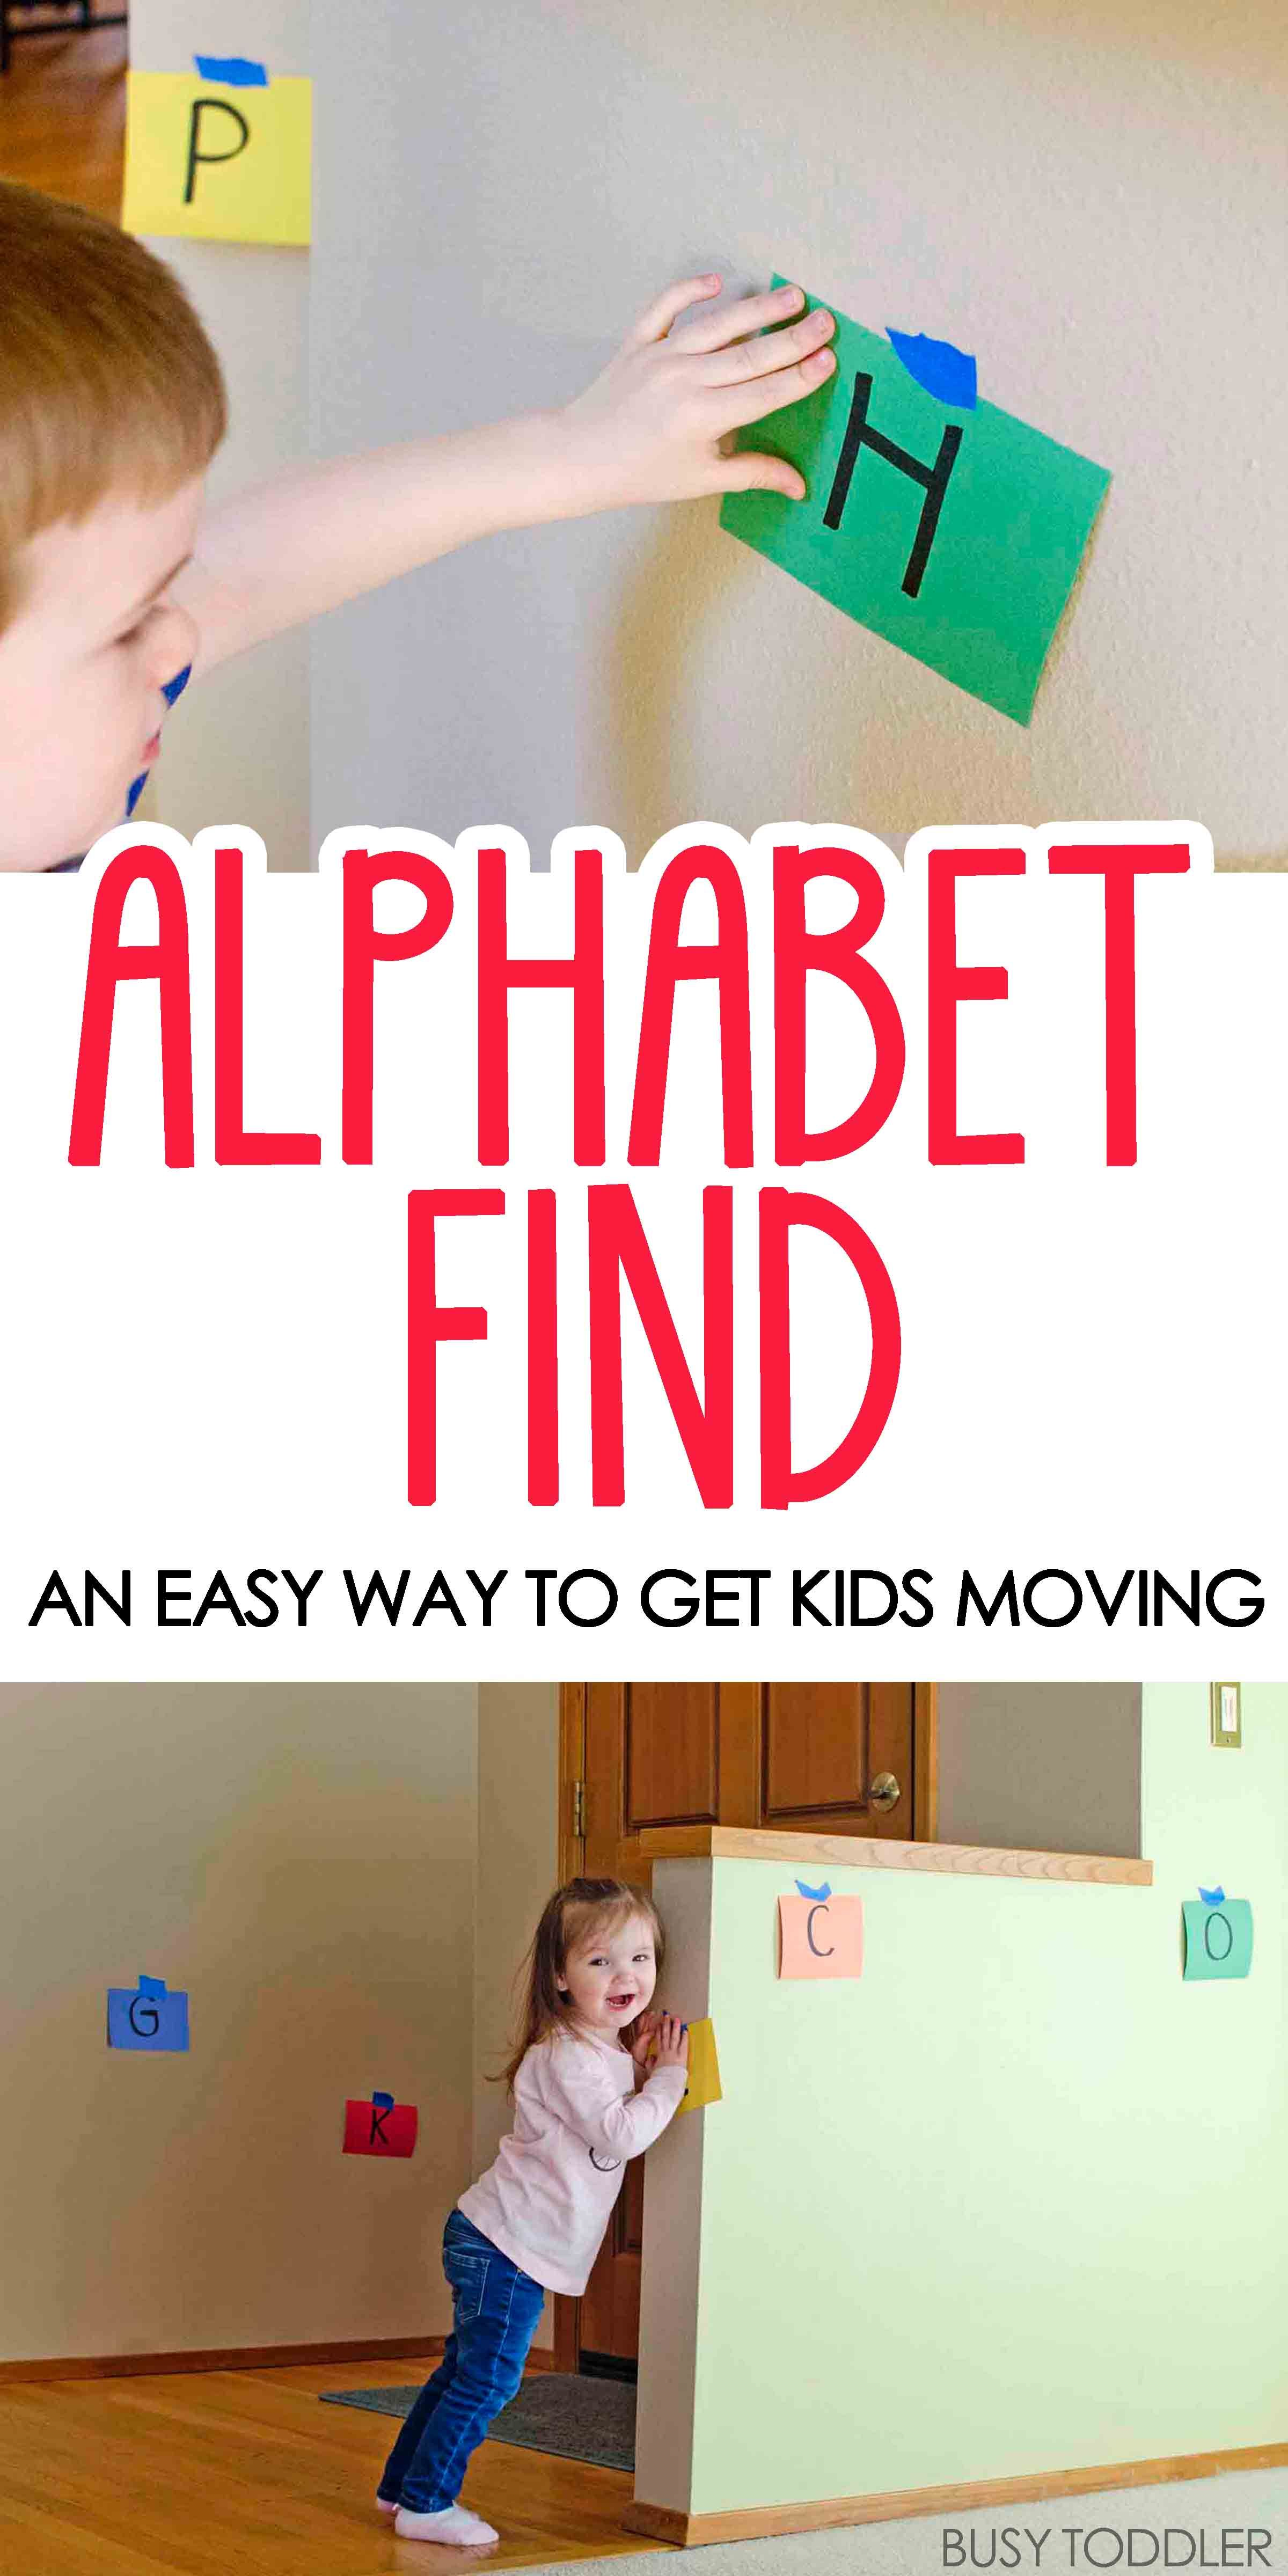 Alphabet Find Learning Activity Teaching English Toddler